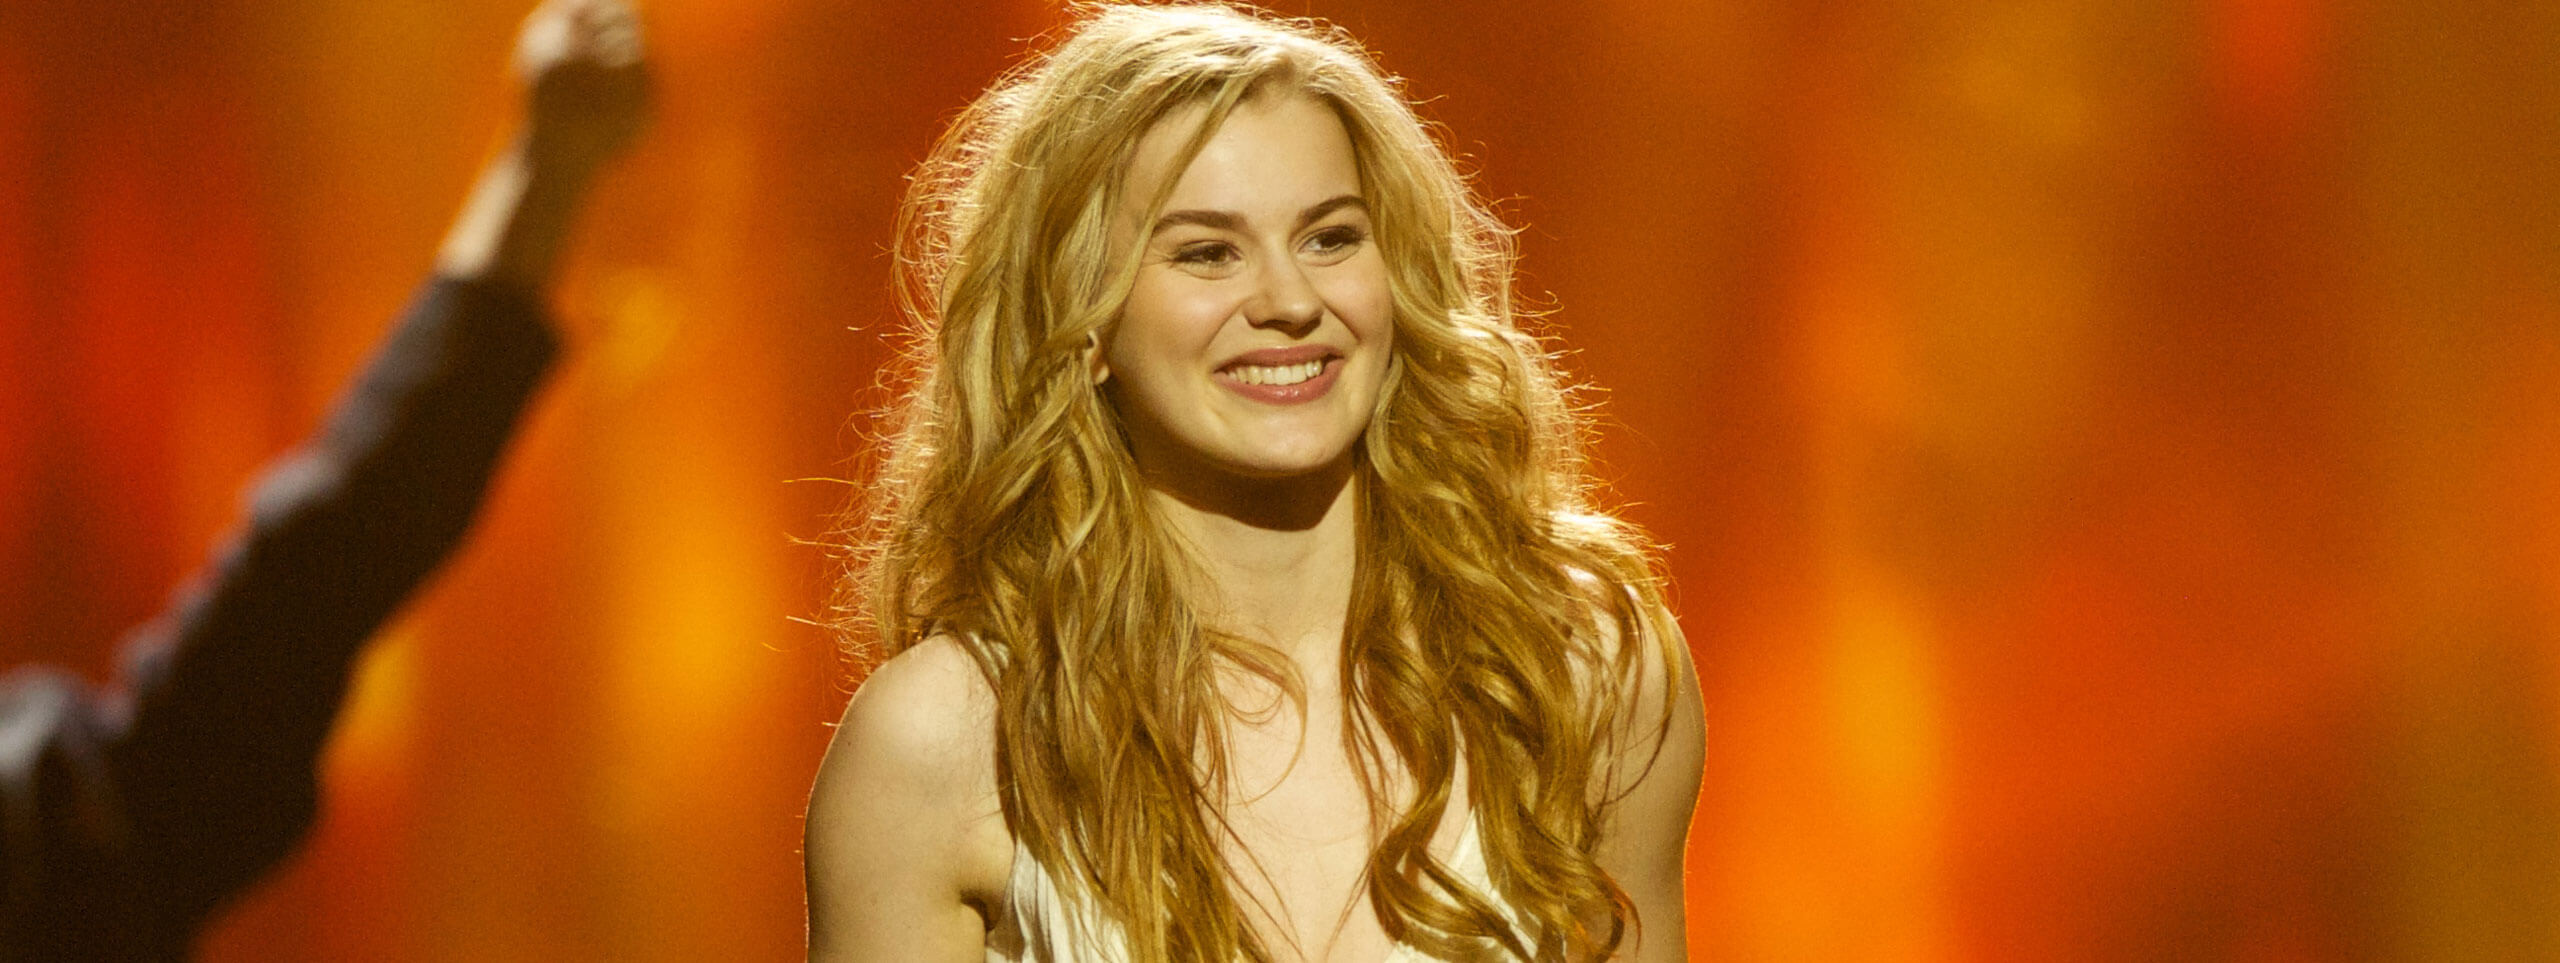 hairstyles-eurovision-song-contest-2013